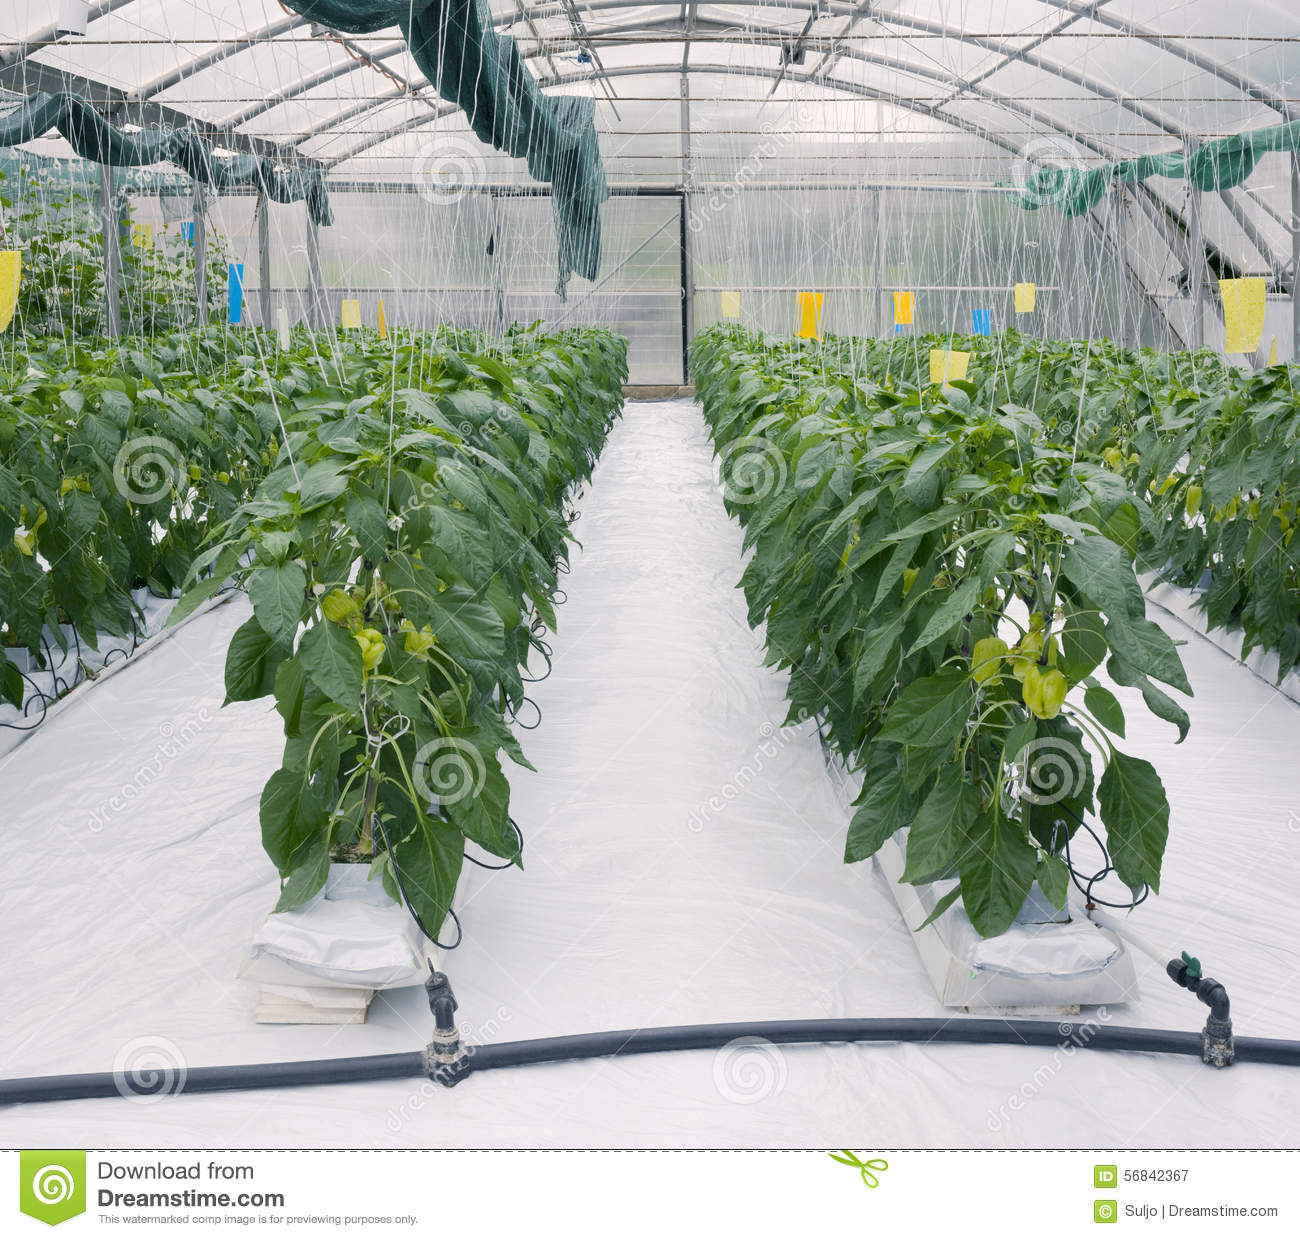 hydroponic food production pdf free download